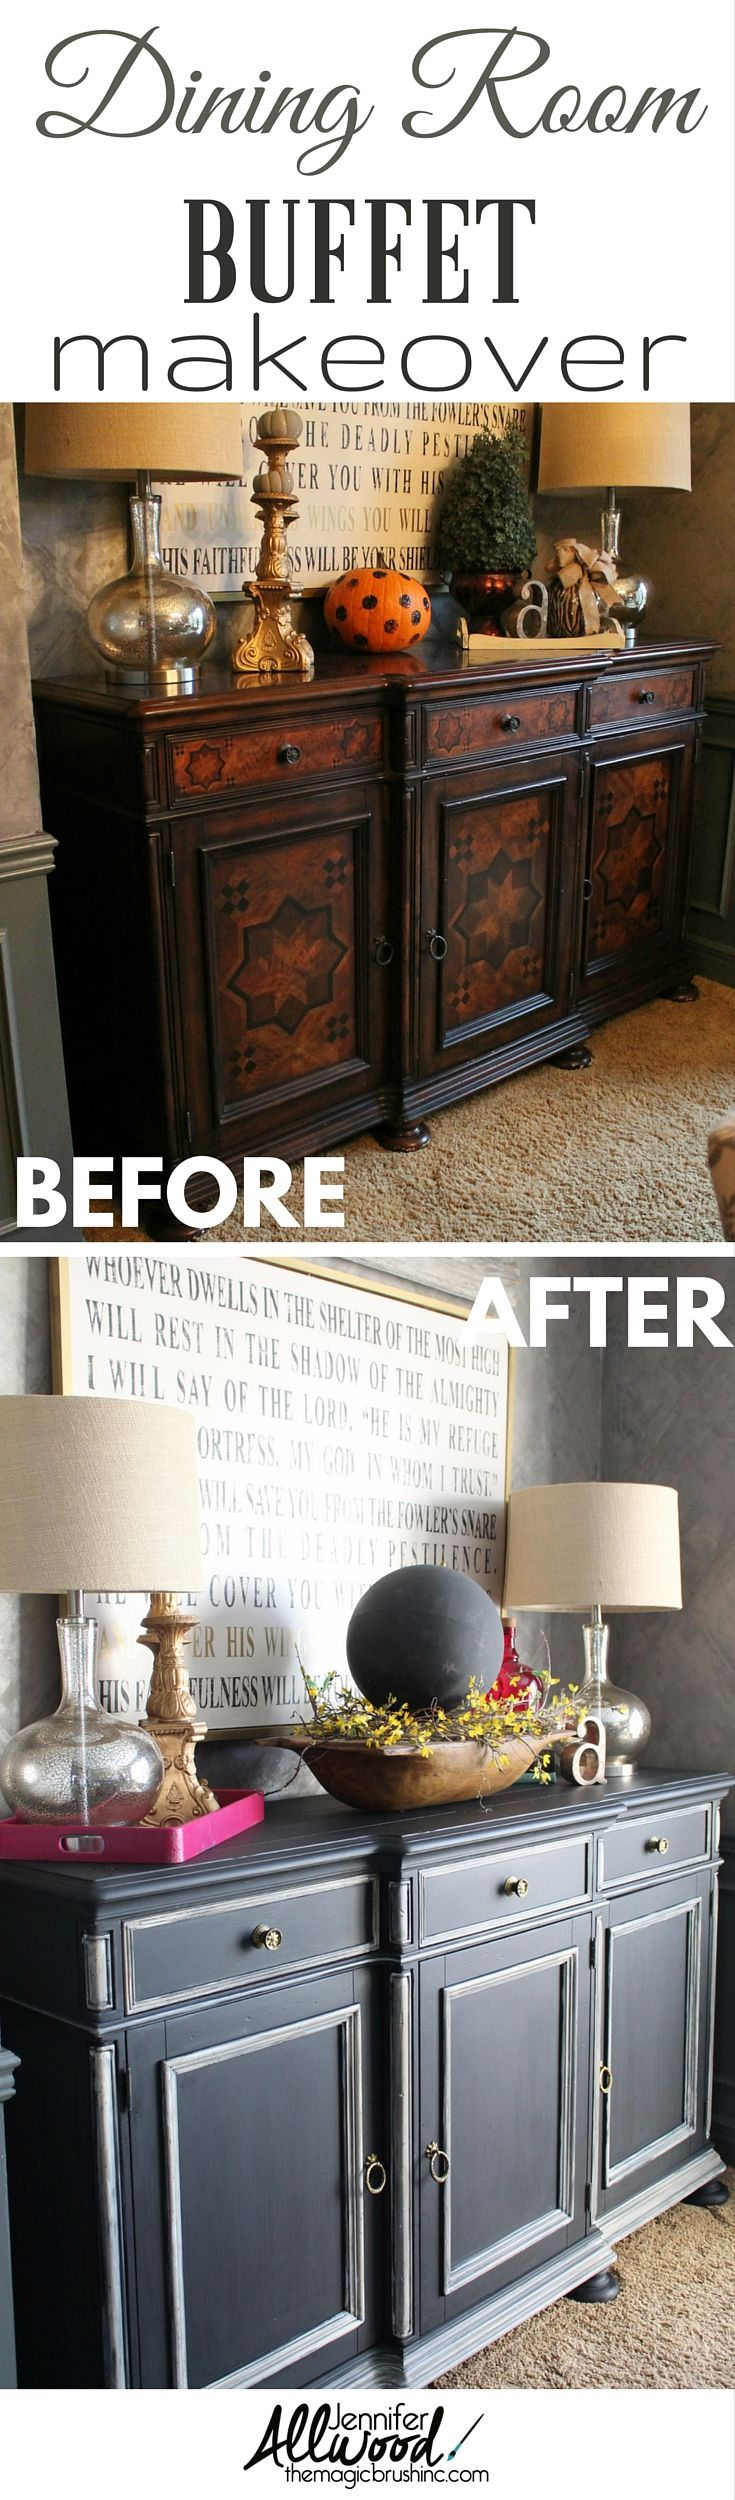 My Dining Room Buffet Makeover turned out fabulous! I know a few of my fans doubted me ruining a wood piece, but this new black bean finish with French vanilla details is just gorgeous! It transformed from dated old world to a modern look! Furniture painting Tips, DIY Videos and more at theMagicBrushinc.com